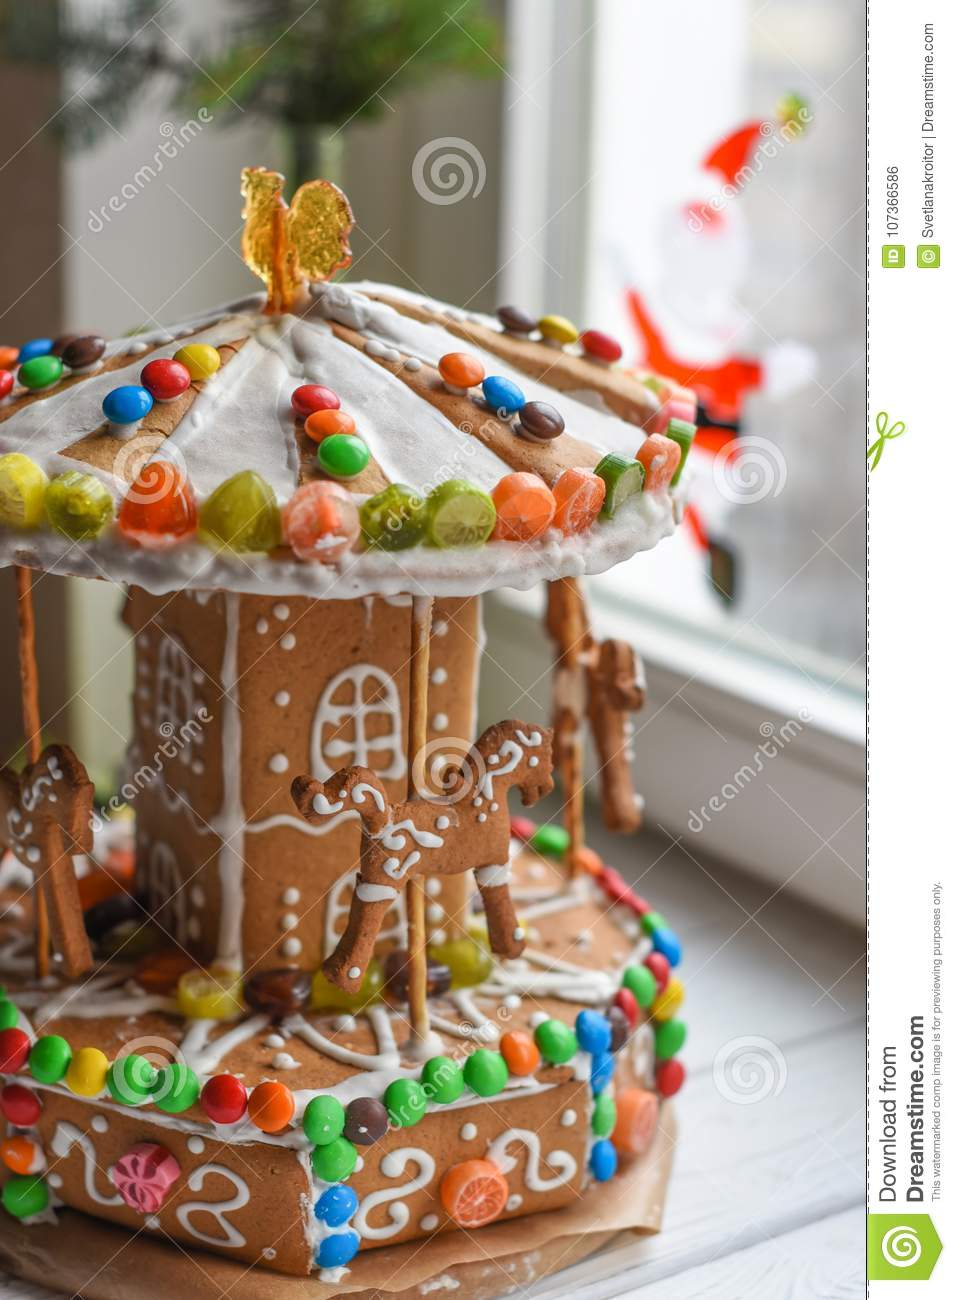 download a gingerbread carousel and some christmas decoration elements on a white wooden surface stock photo - Christmas Carousel Decoration